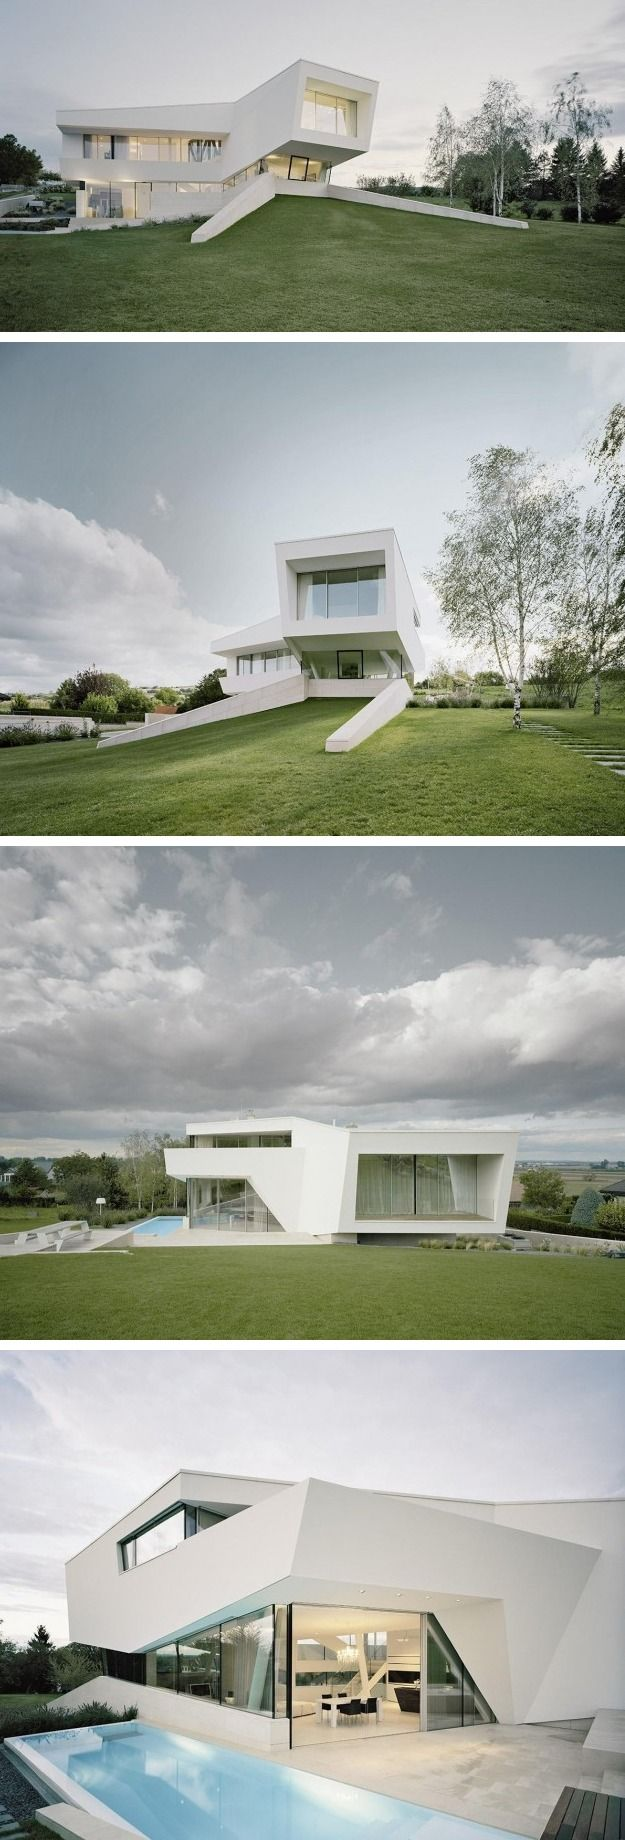 Project A01 Architects designed the Villa Freundorf for a family near Vienna, Austria.